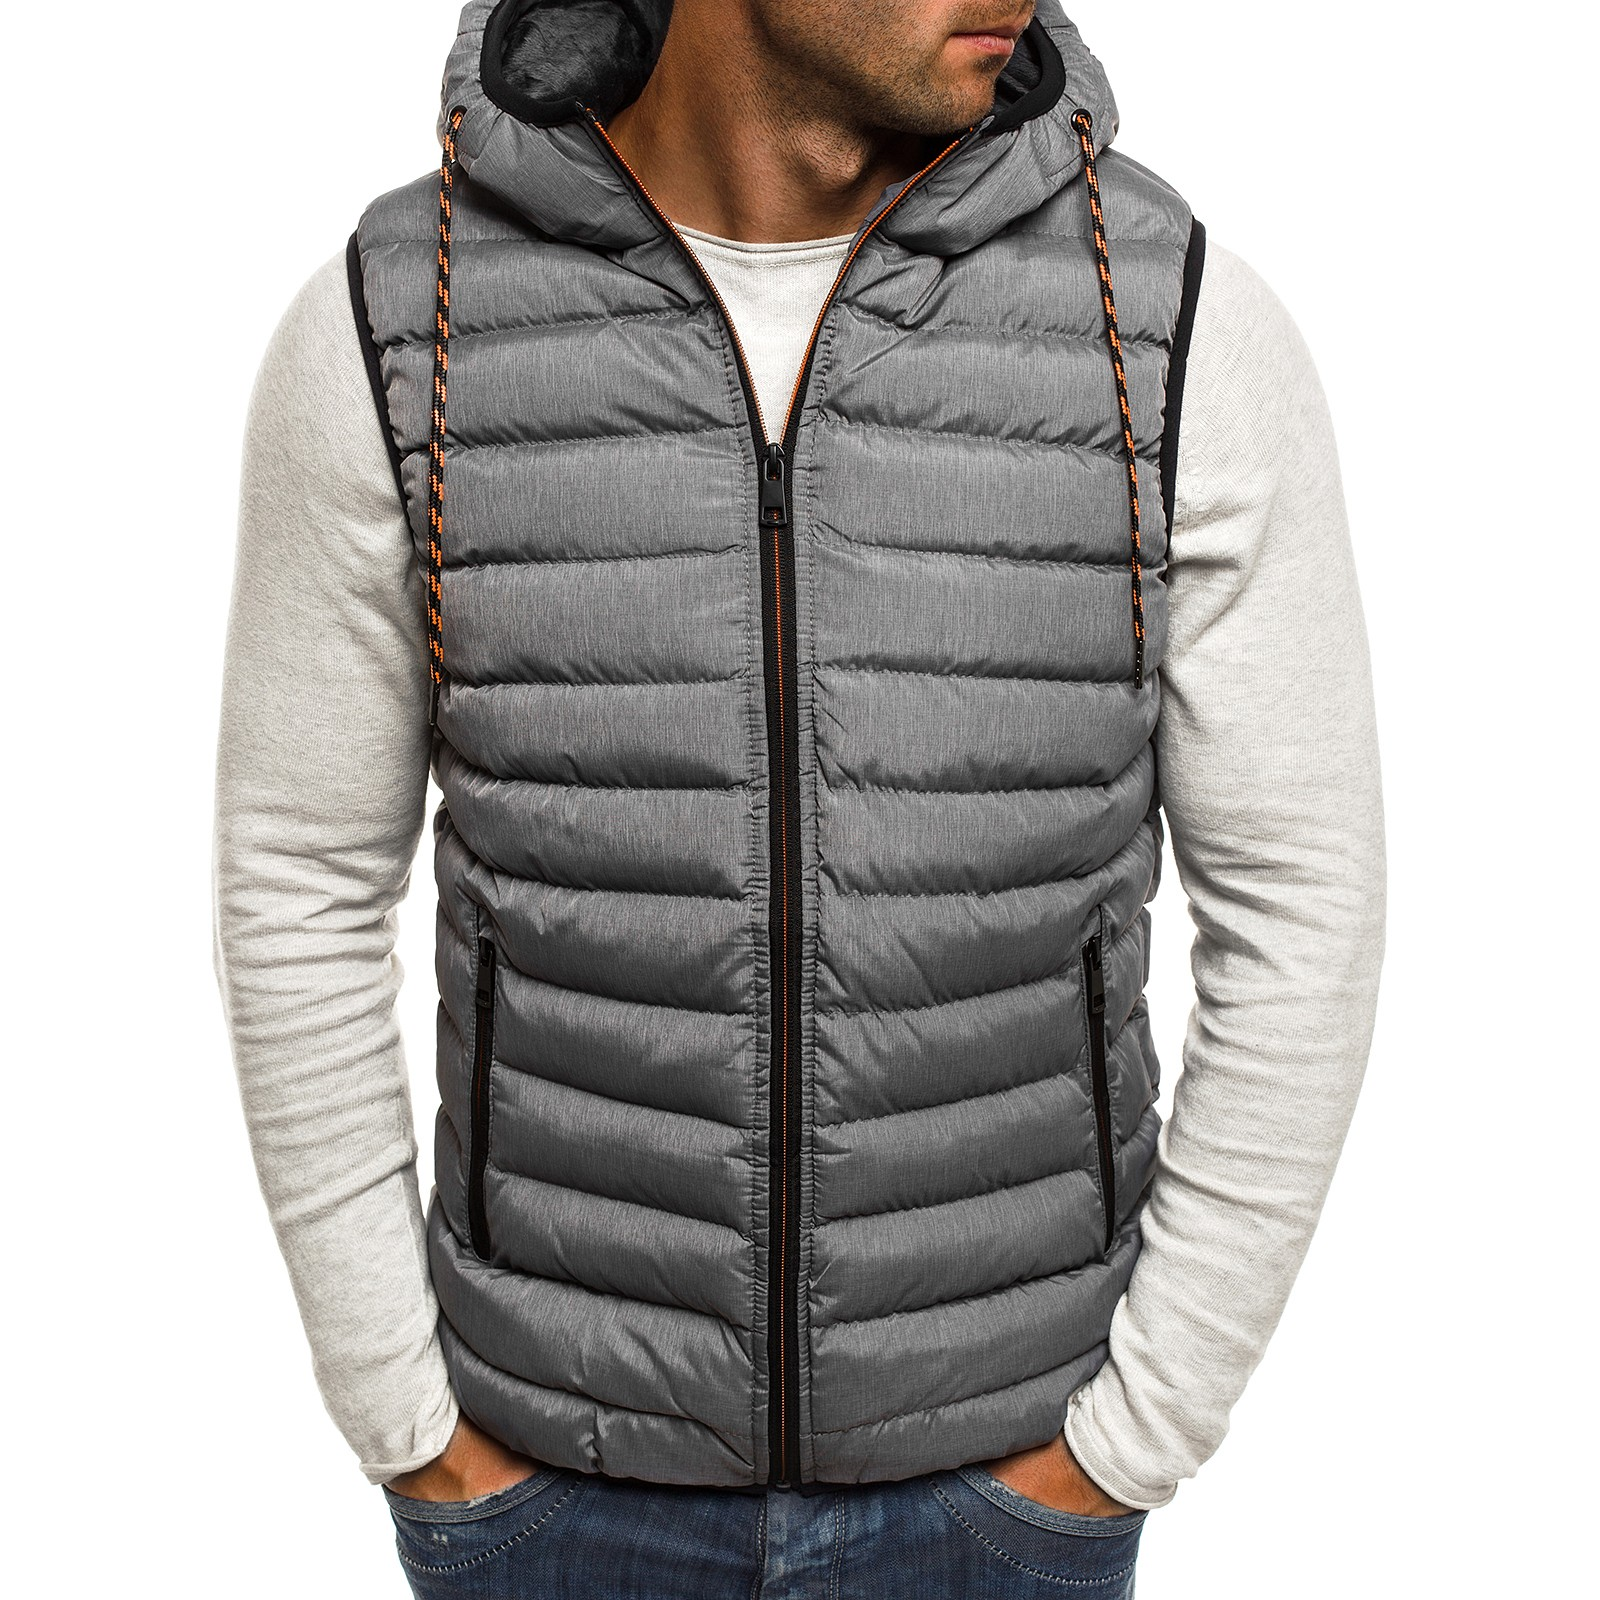 ZOGAA New men winter jacket new Casual fashion hood mens vests  vest plus size M-4XL lightweight 2019